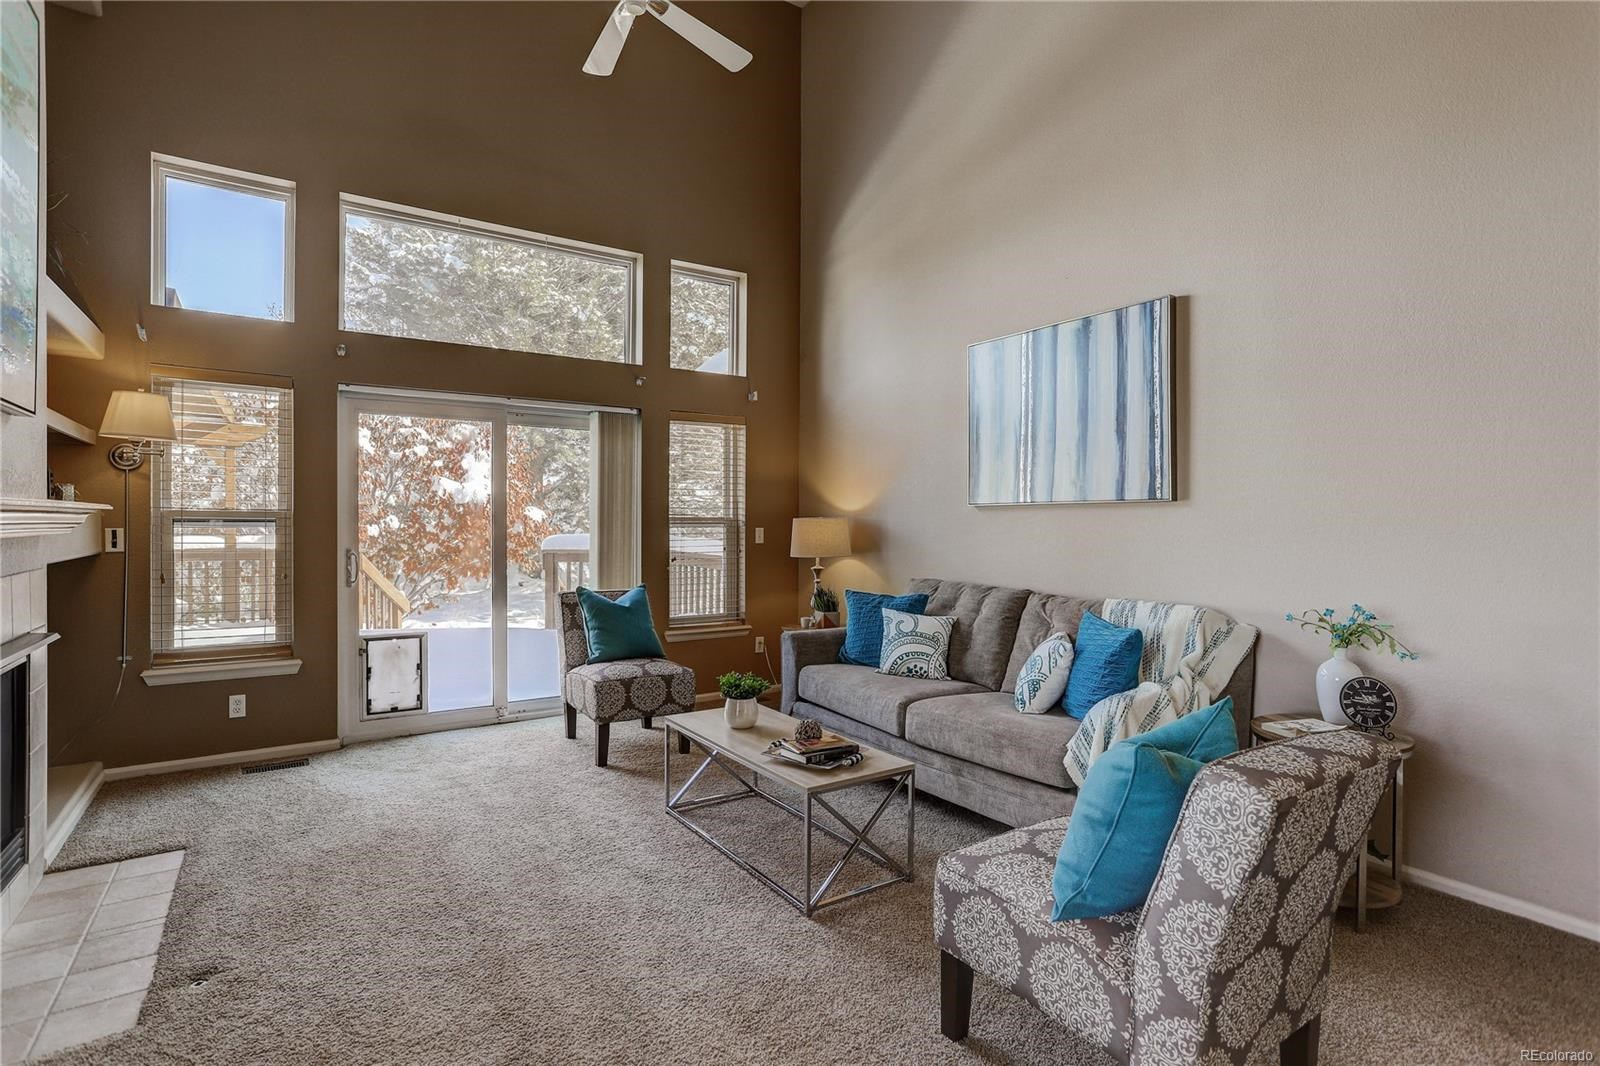 MLS# 8327774 - 14 - 806 W 127th Court, Westminster, CO 80234